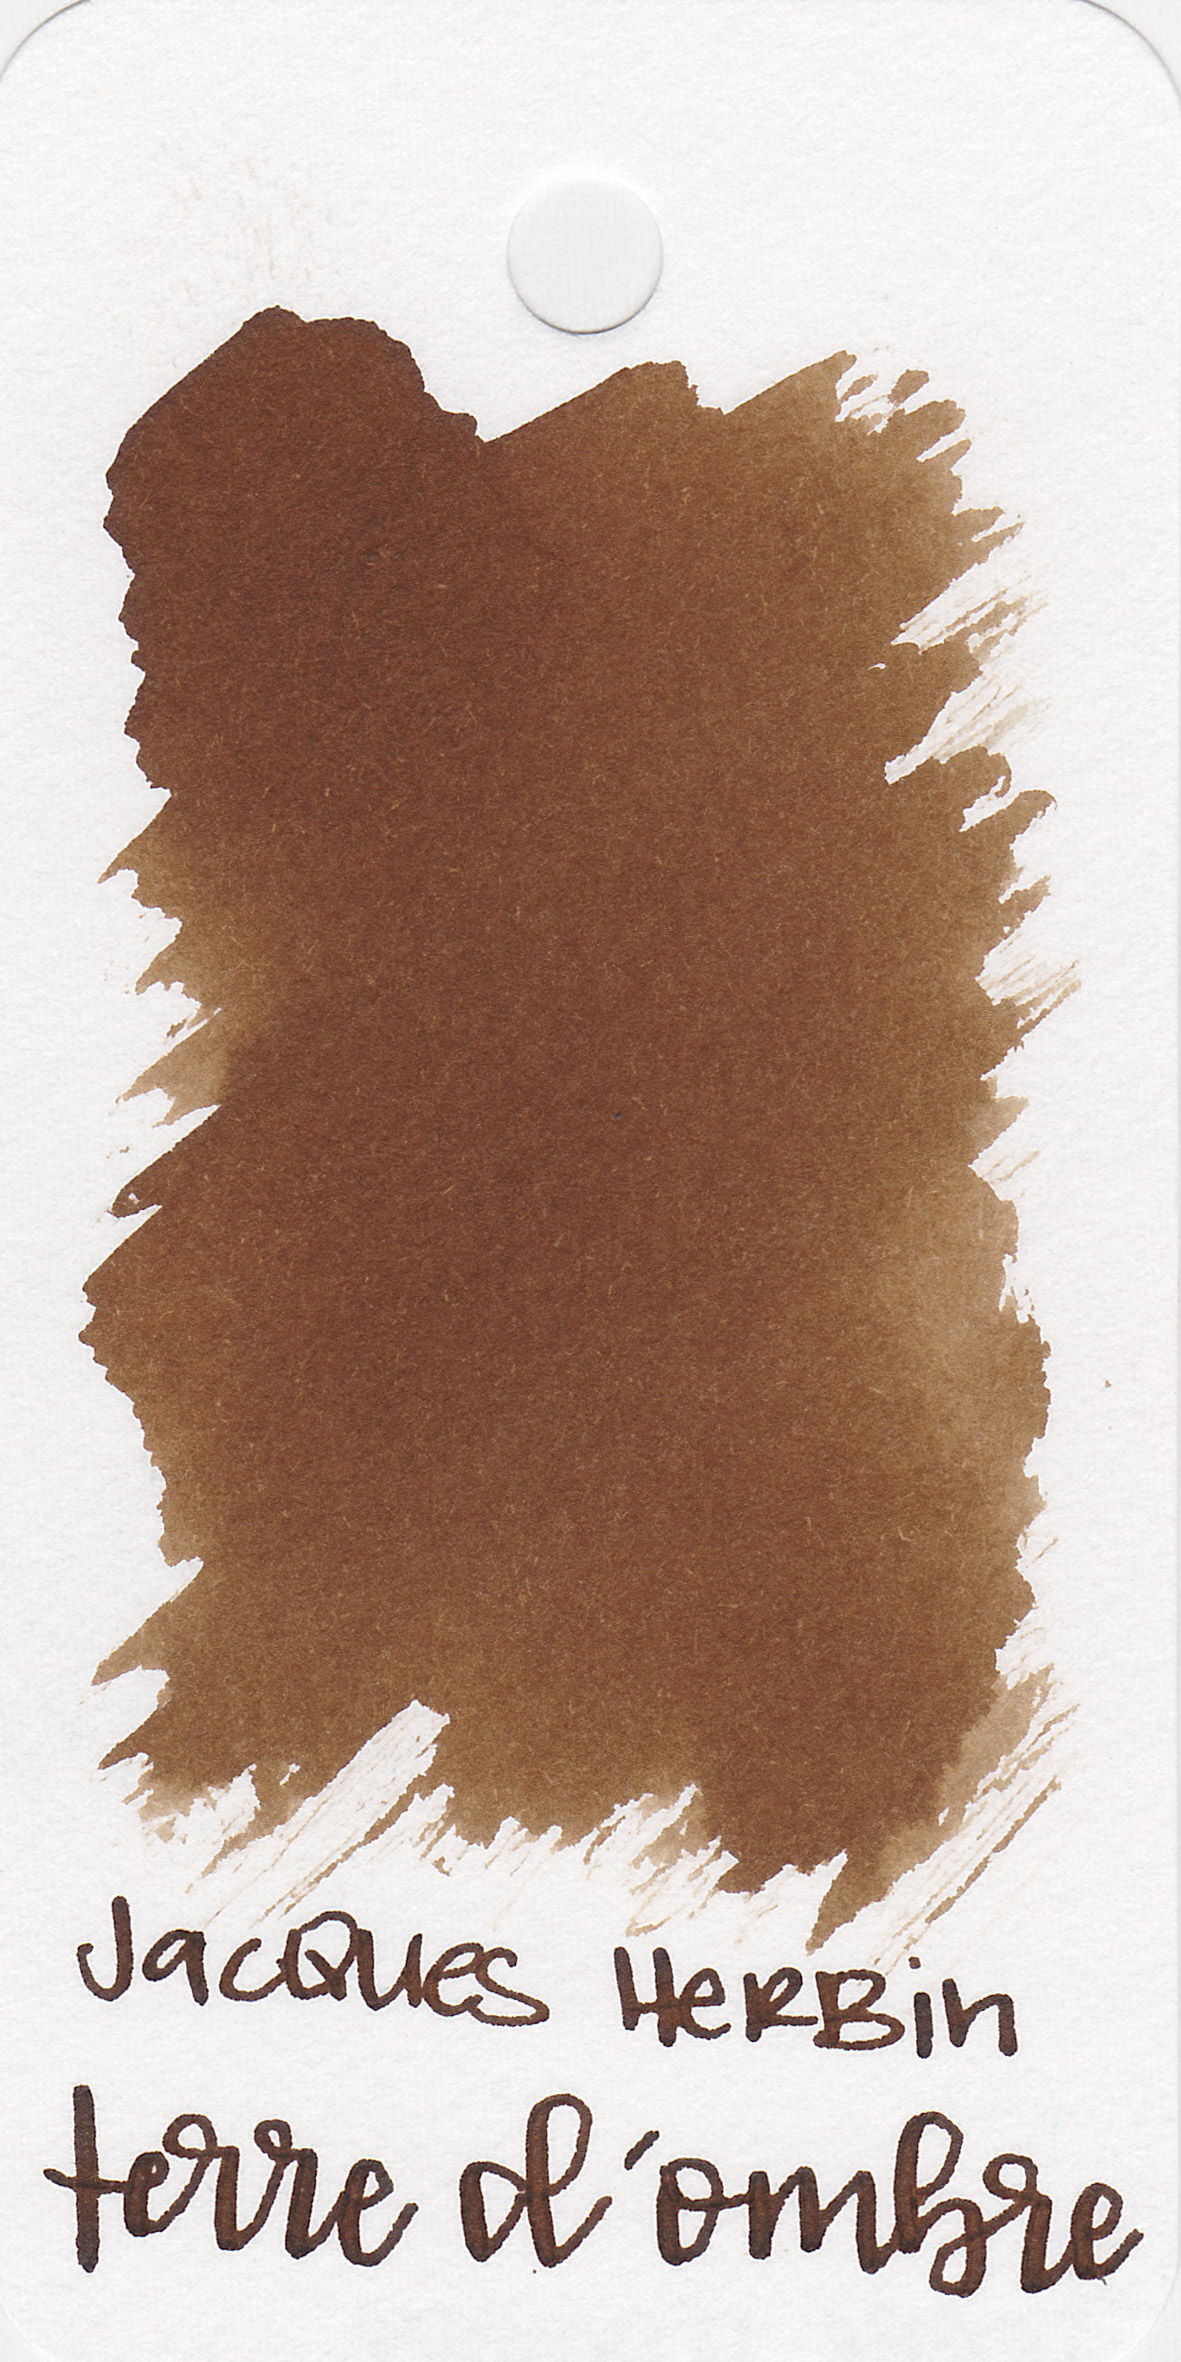 The color: - Terre d'Ombre is a medium brown with a hint of orange.